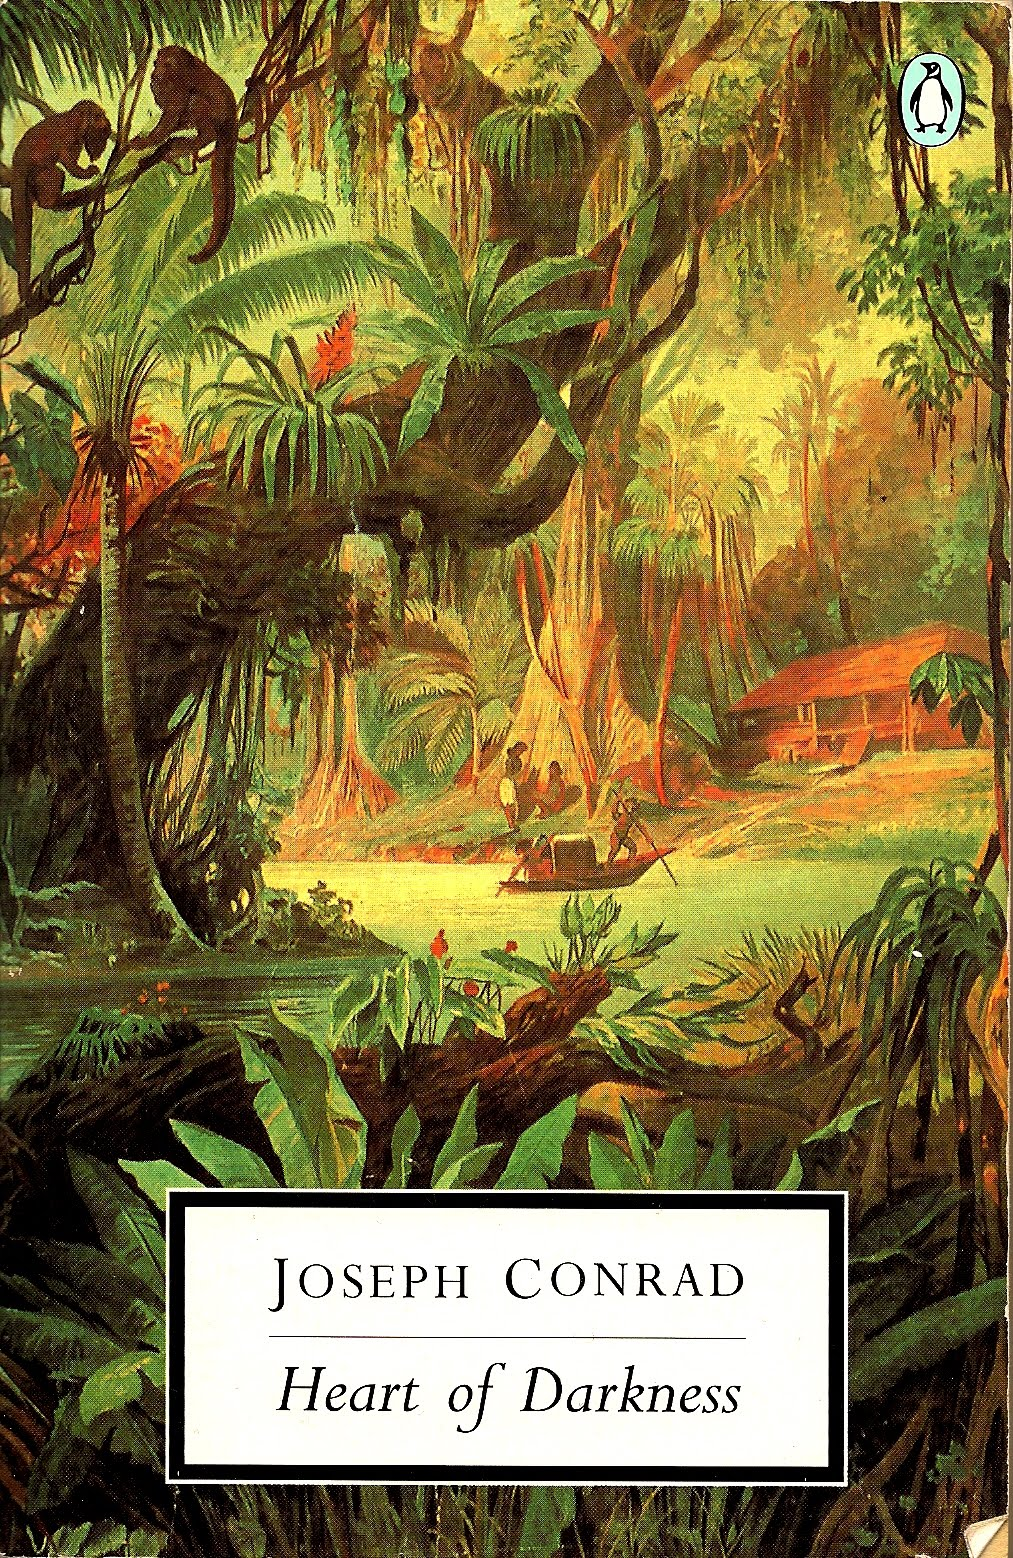 heart of darkness coursework While in england between 1898 and 1899, joseph conrad wrote the novella heart of darkness taking place during the height of european imperialism in africa, heart of darkness follows the.